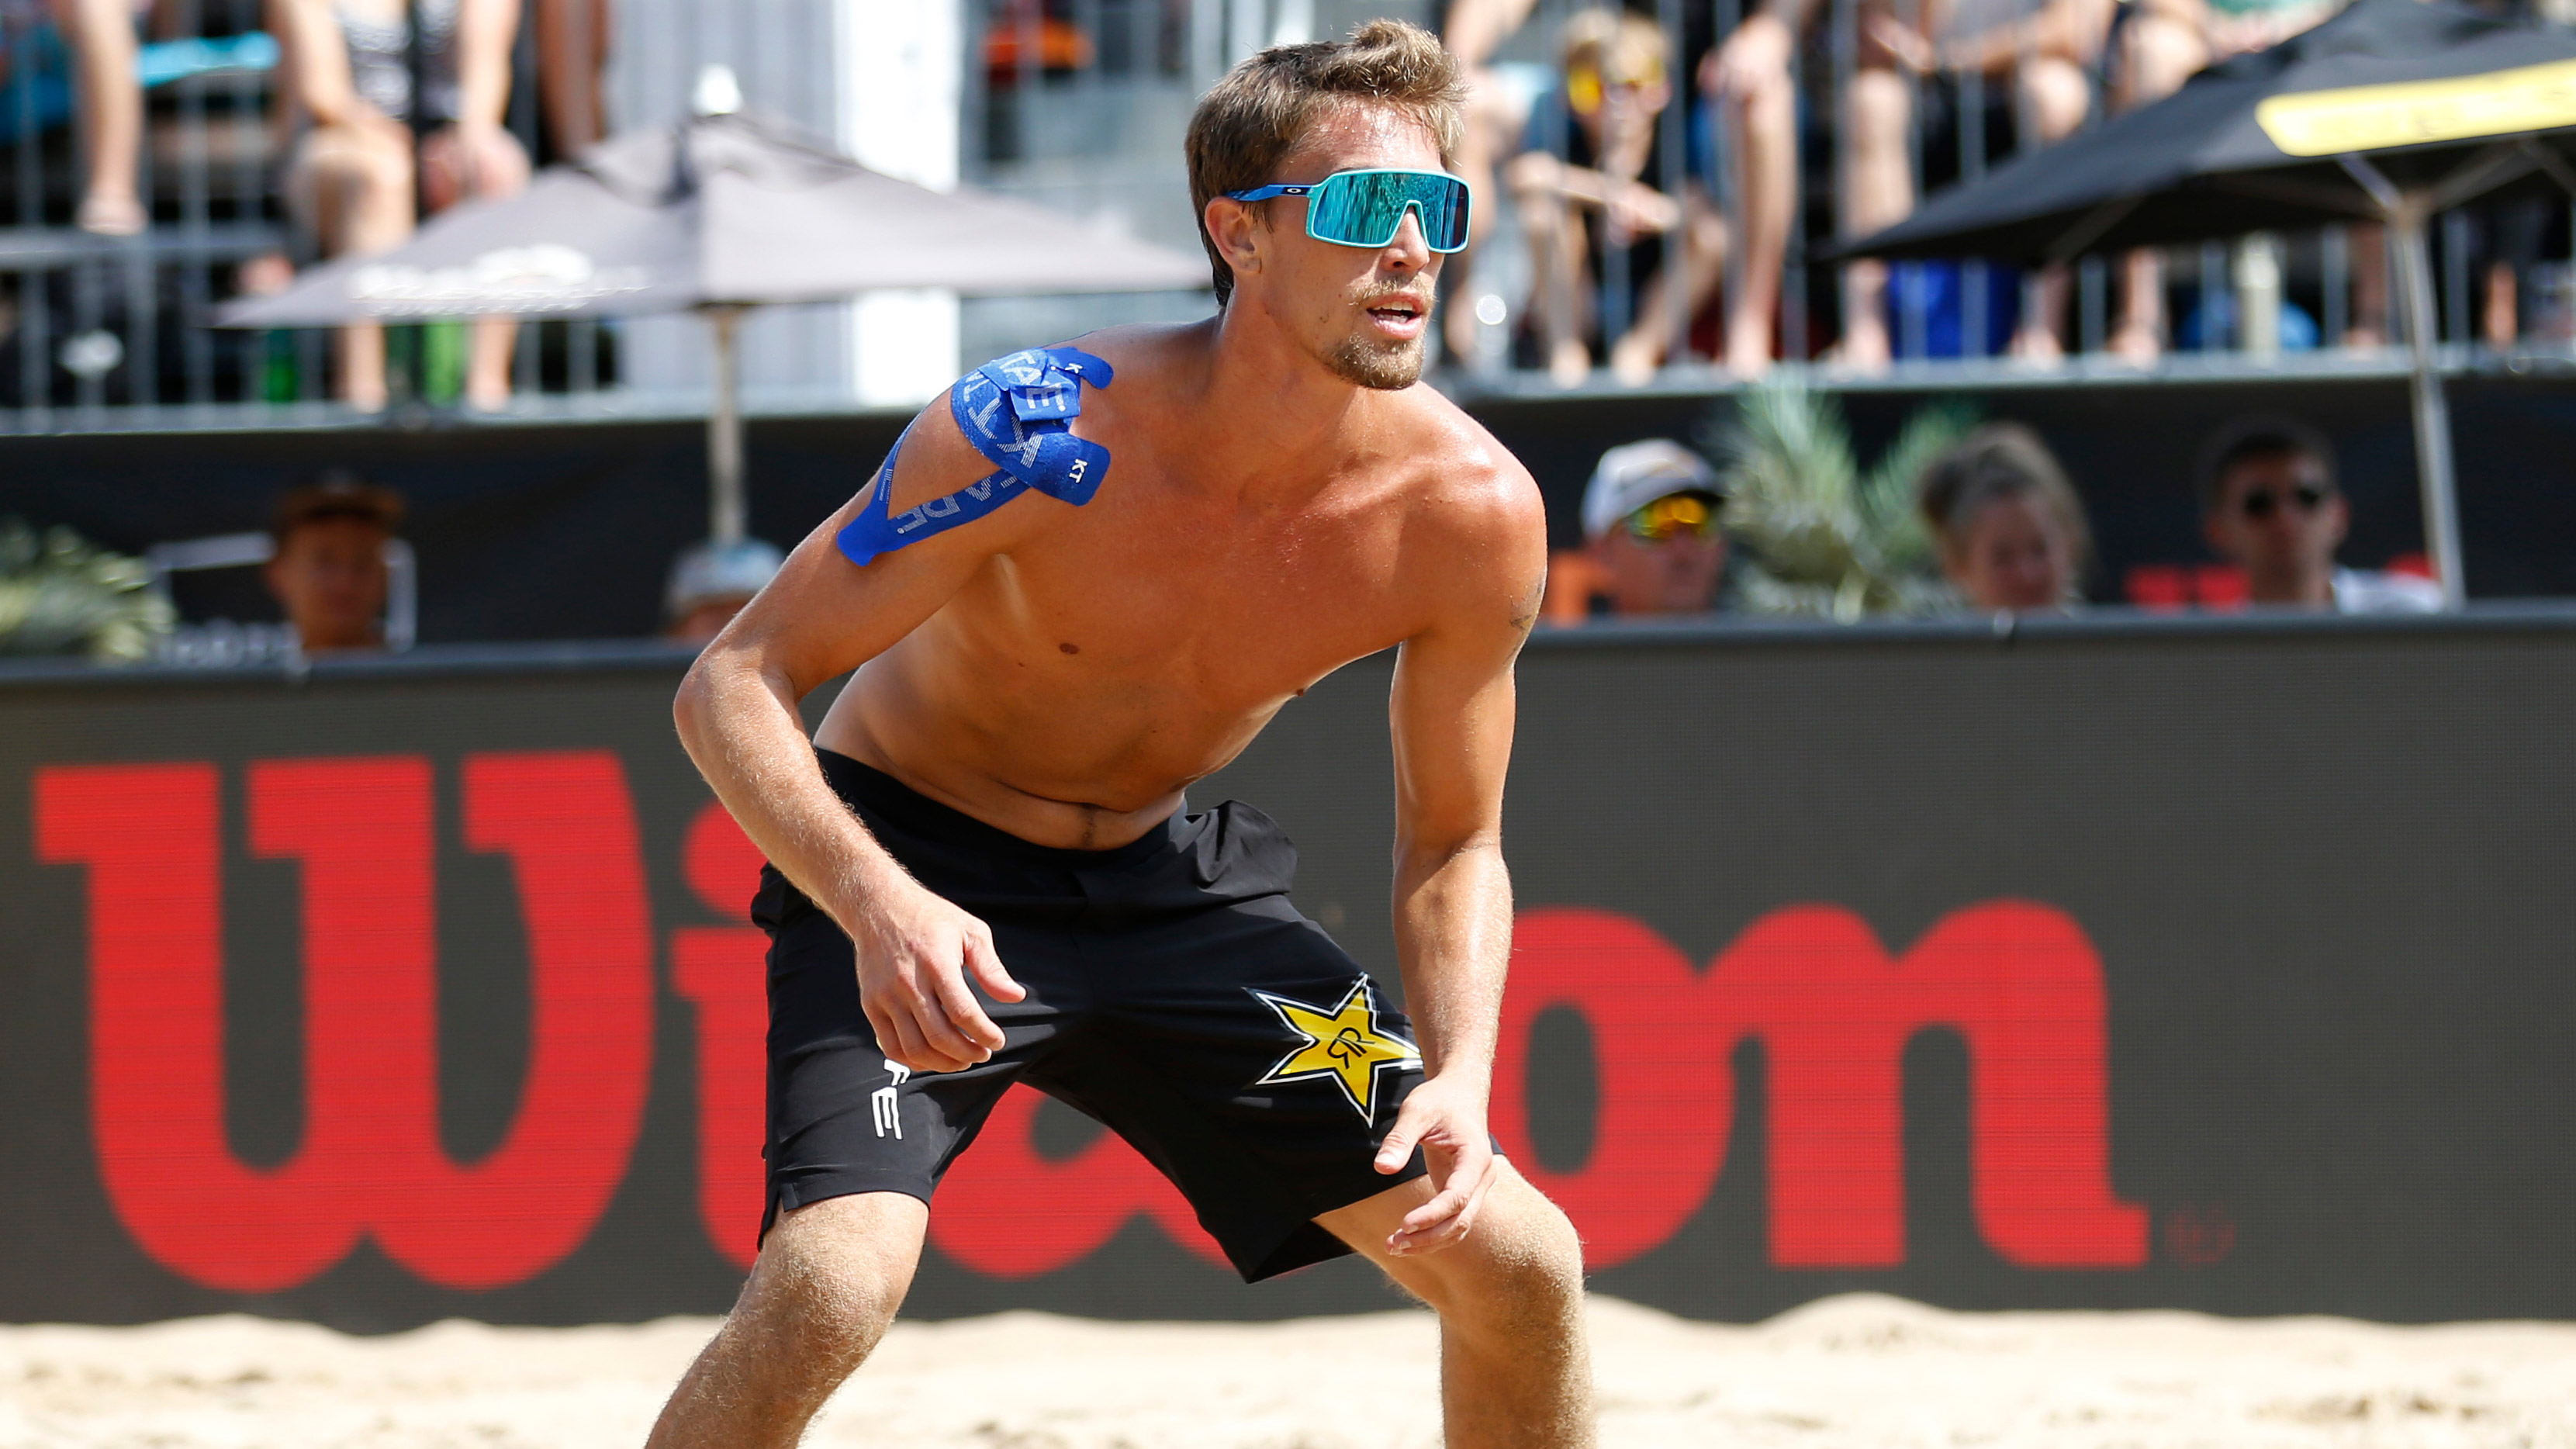 Taylor Crabb stands on the court during the AVP Gold Series Championships at Oak Street Beach on September 1, 2019, in Chicago.